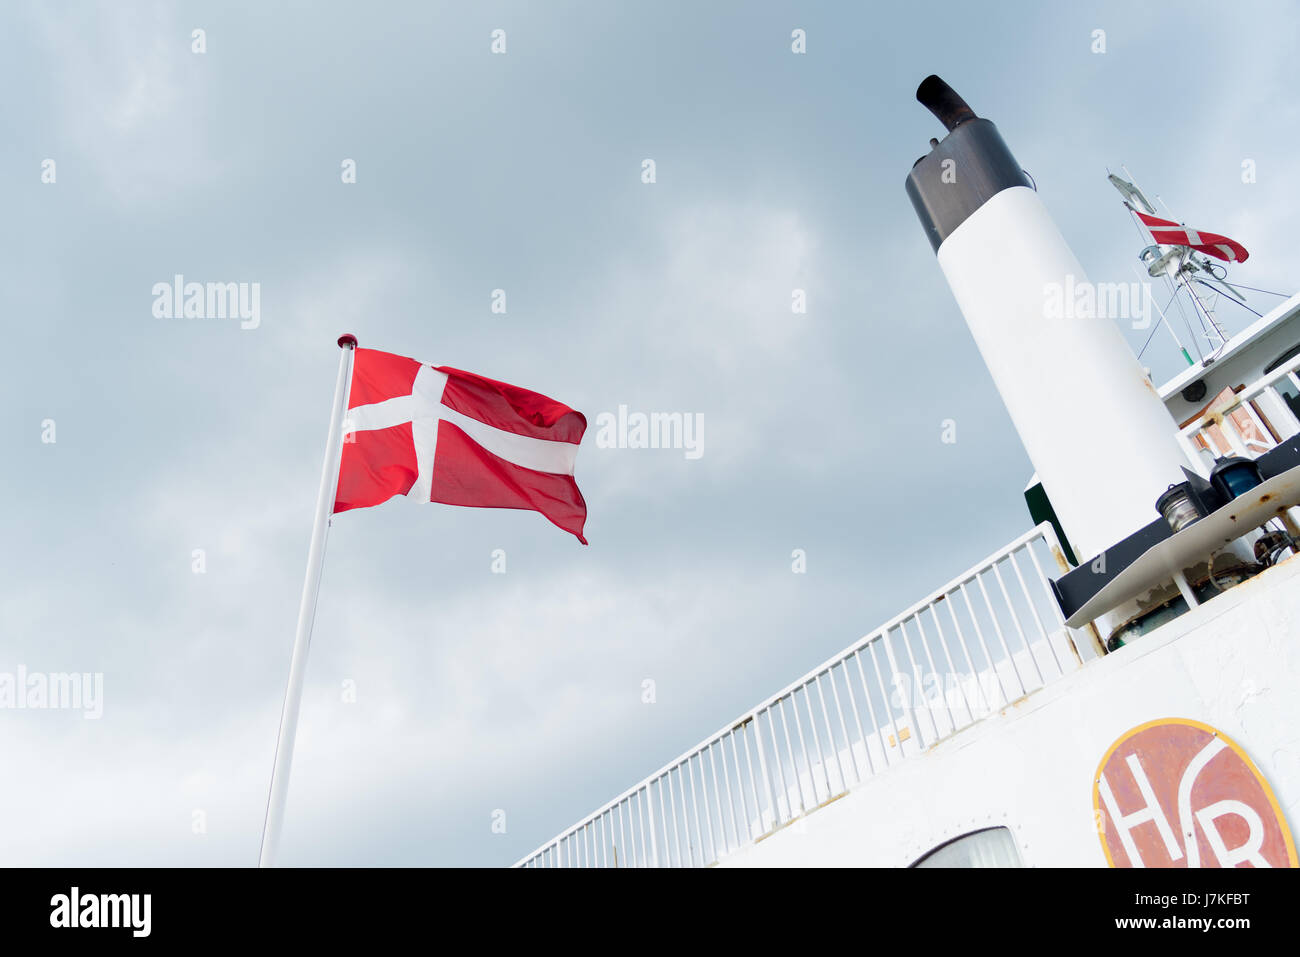 HUNDESTED, DENMARK - AUGUST 8, 2016: Danish flag on the Hundested - roervig ferryboat - Stock Image